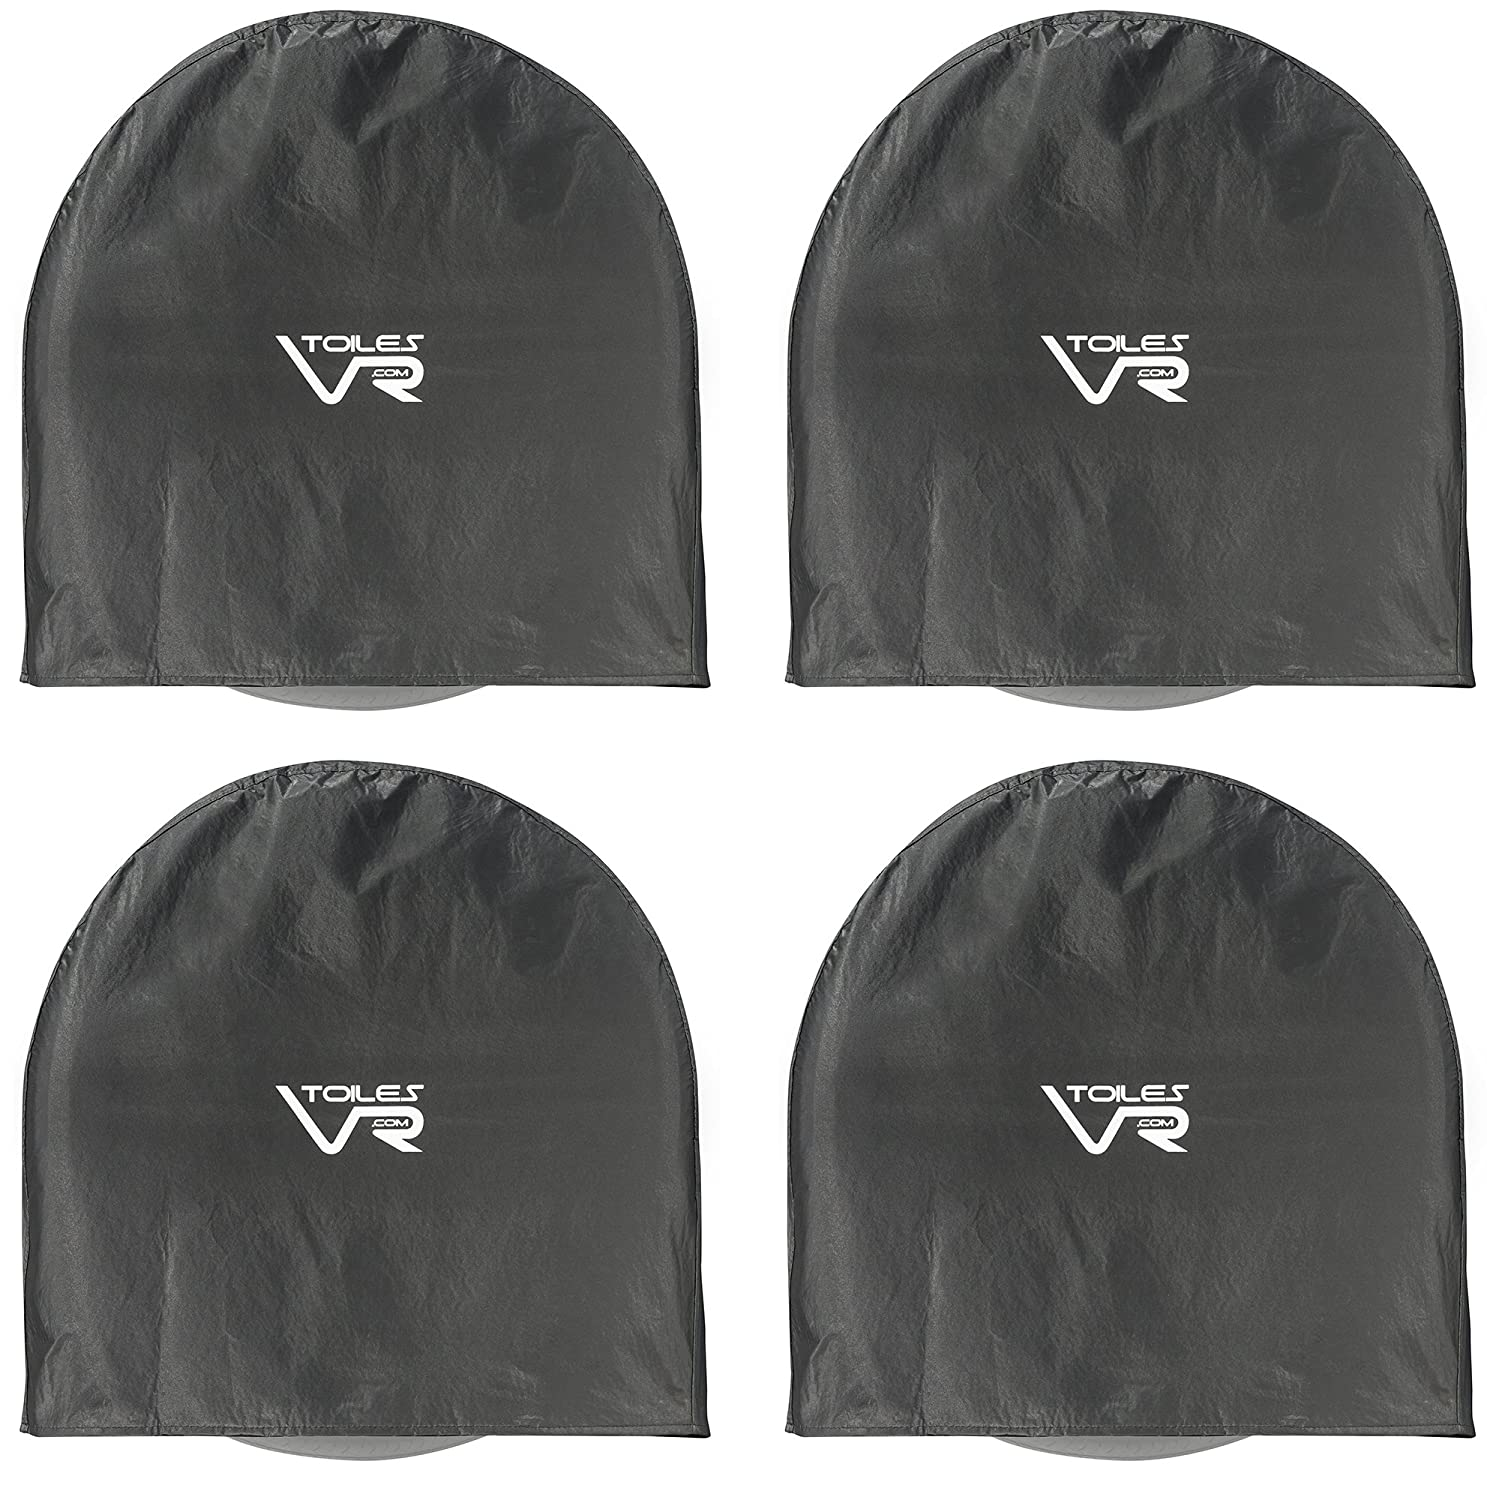 Tire Covers Waterproof Wheel Protection (Set of 4) Fits (36 Inch-39 Inch D*9) | Easy Slip-On and Easy to Clean | Black Vinyl Wheel Covers Resistant to Water, Dirt, Rust and Sun | Tires Diameters Ideal Use for RV, Trailers, Campers, Cars and Trucks by Toile